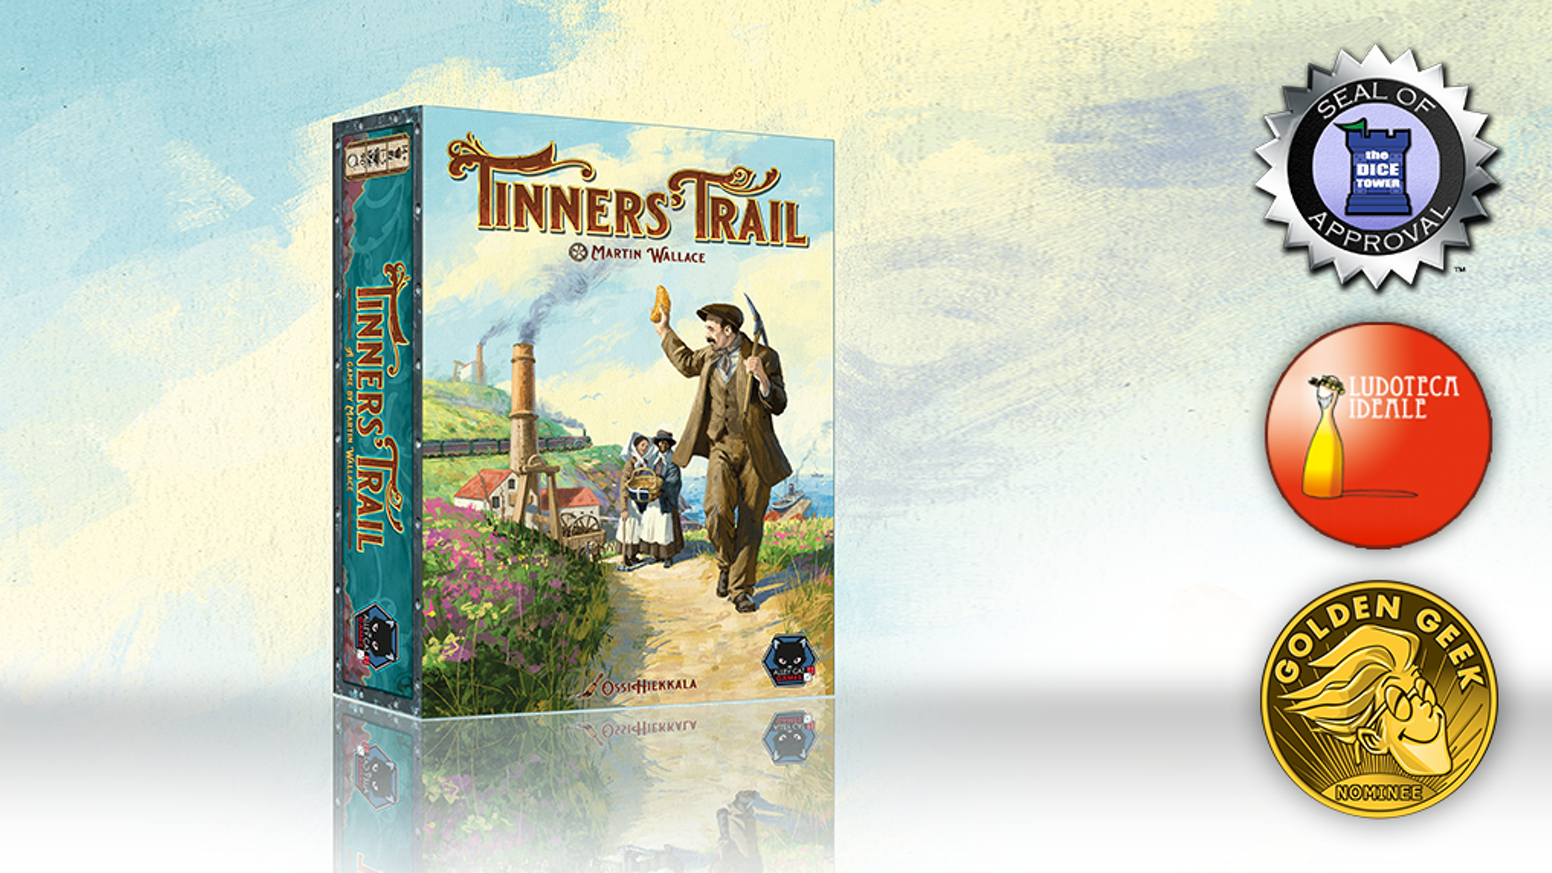 Tinners  Trail - a game by Martin Wallace